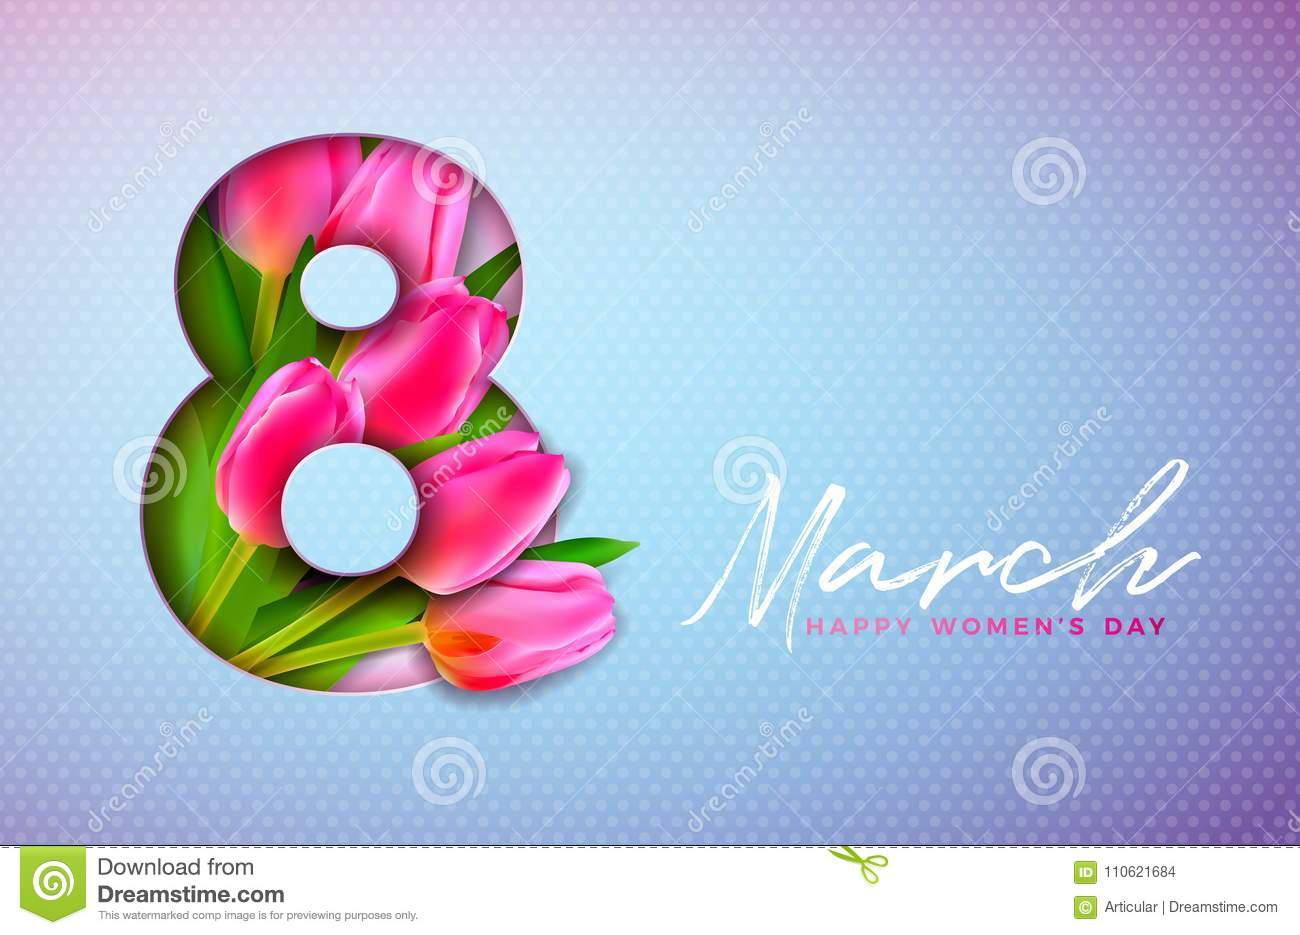 Happy Women`s Day Illustration with Tulip Bouquet and 8 March Typography Letter on Pink Background. Vector Spring Flower